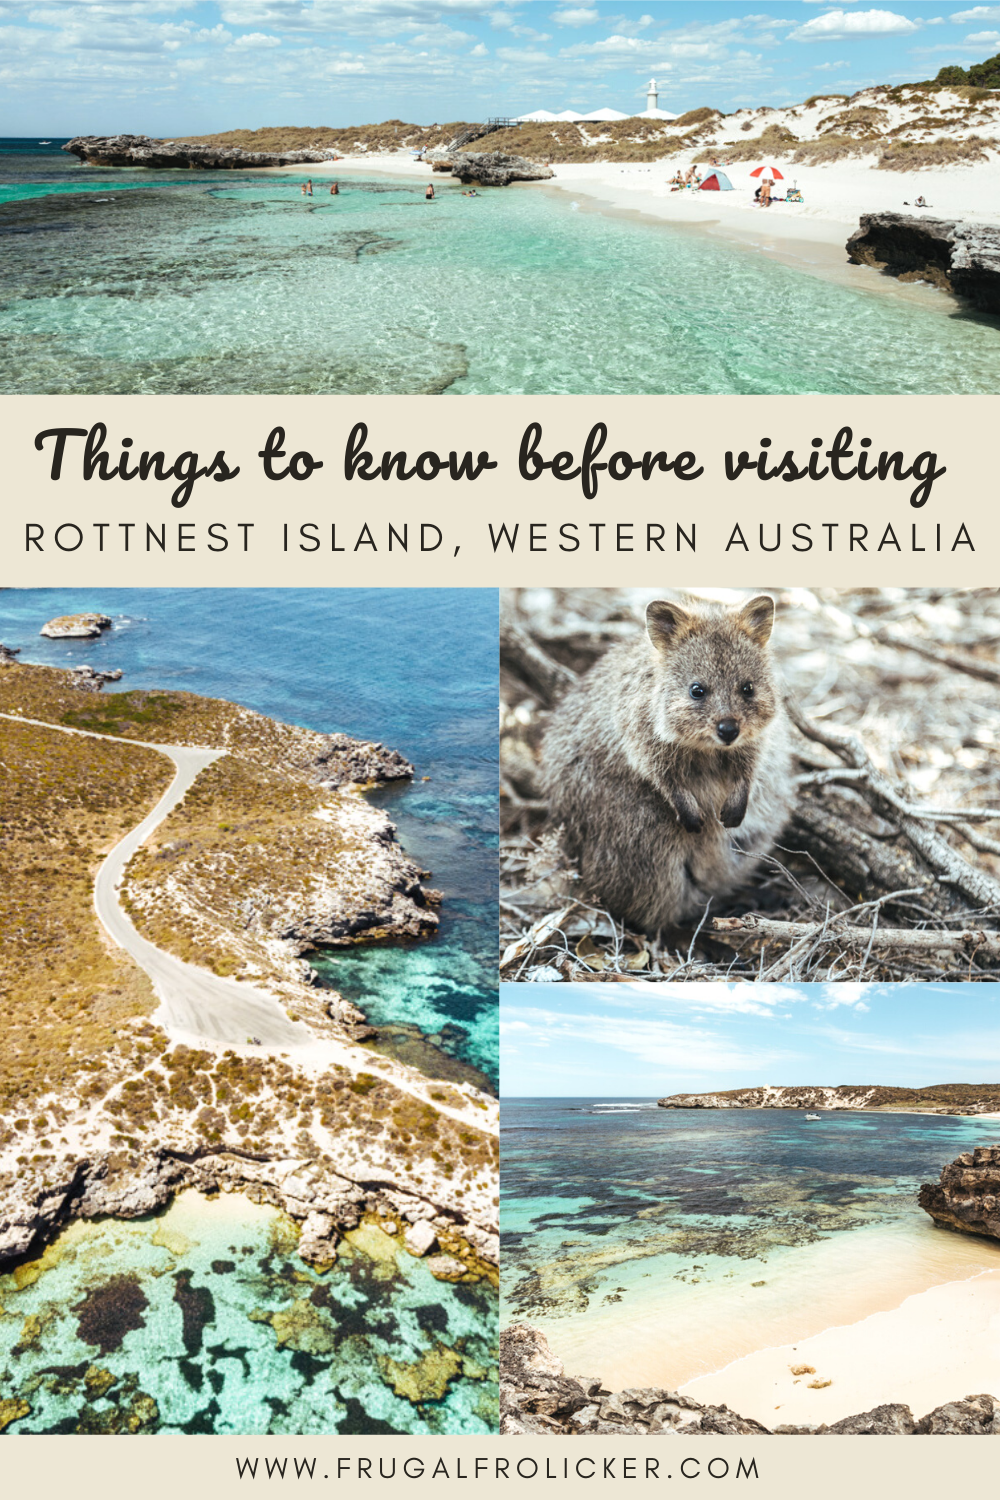 What To Know Before Your Overnight Or Day Trip To Rottnest Island, Western Australia